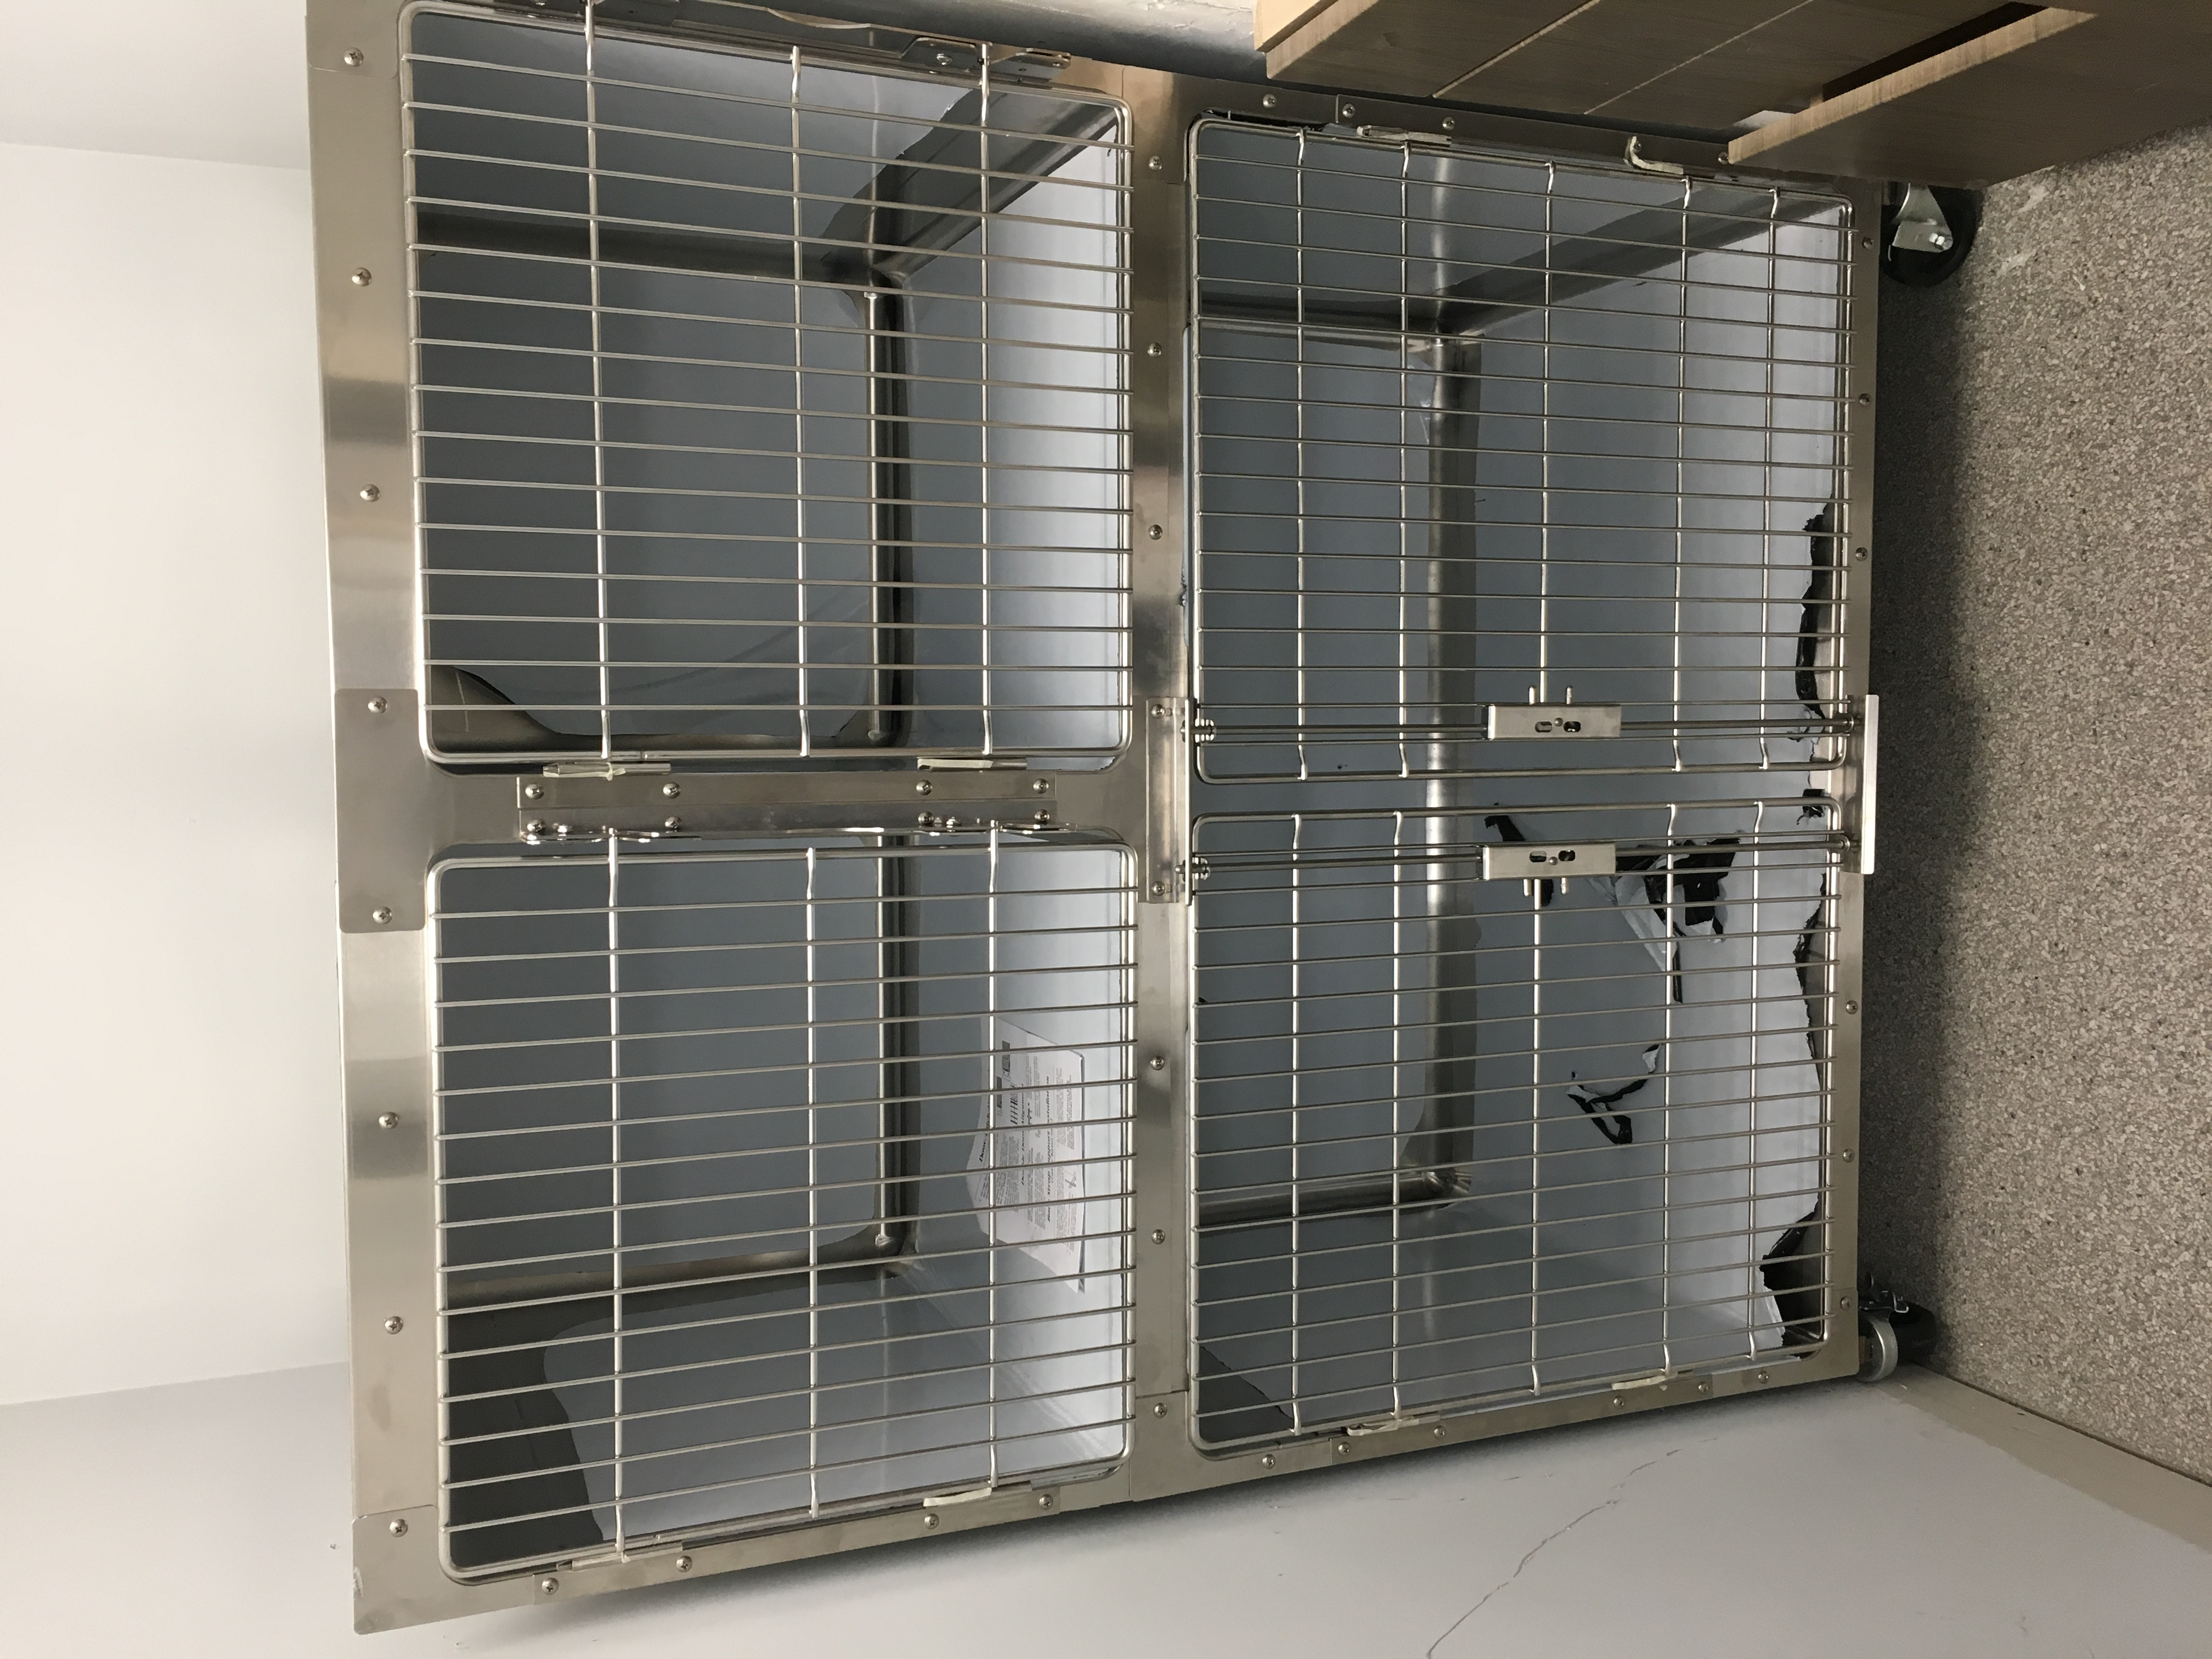 ISO cages are in | PMAH Vet Hospital in South Acton MA